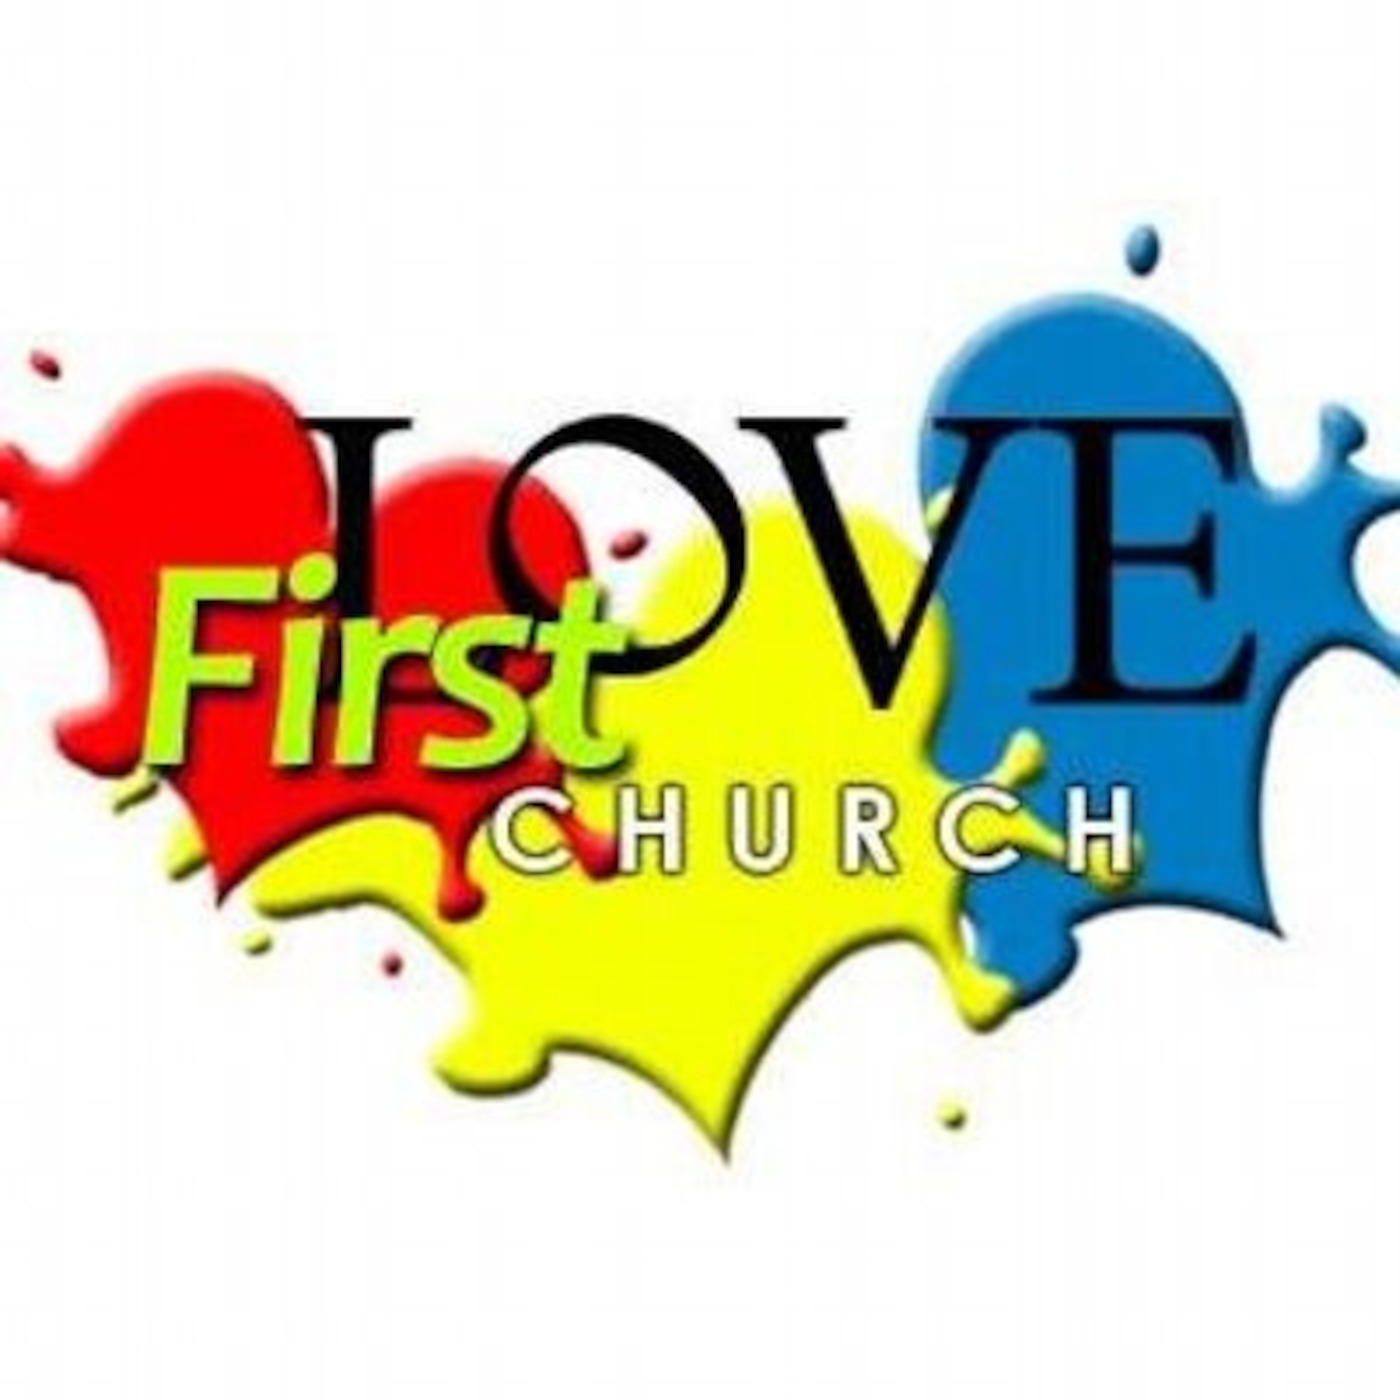 Firstlove Church Kenya